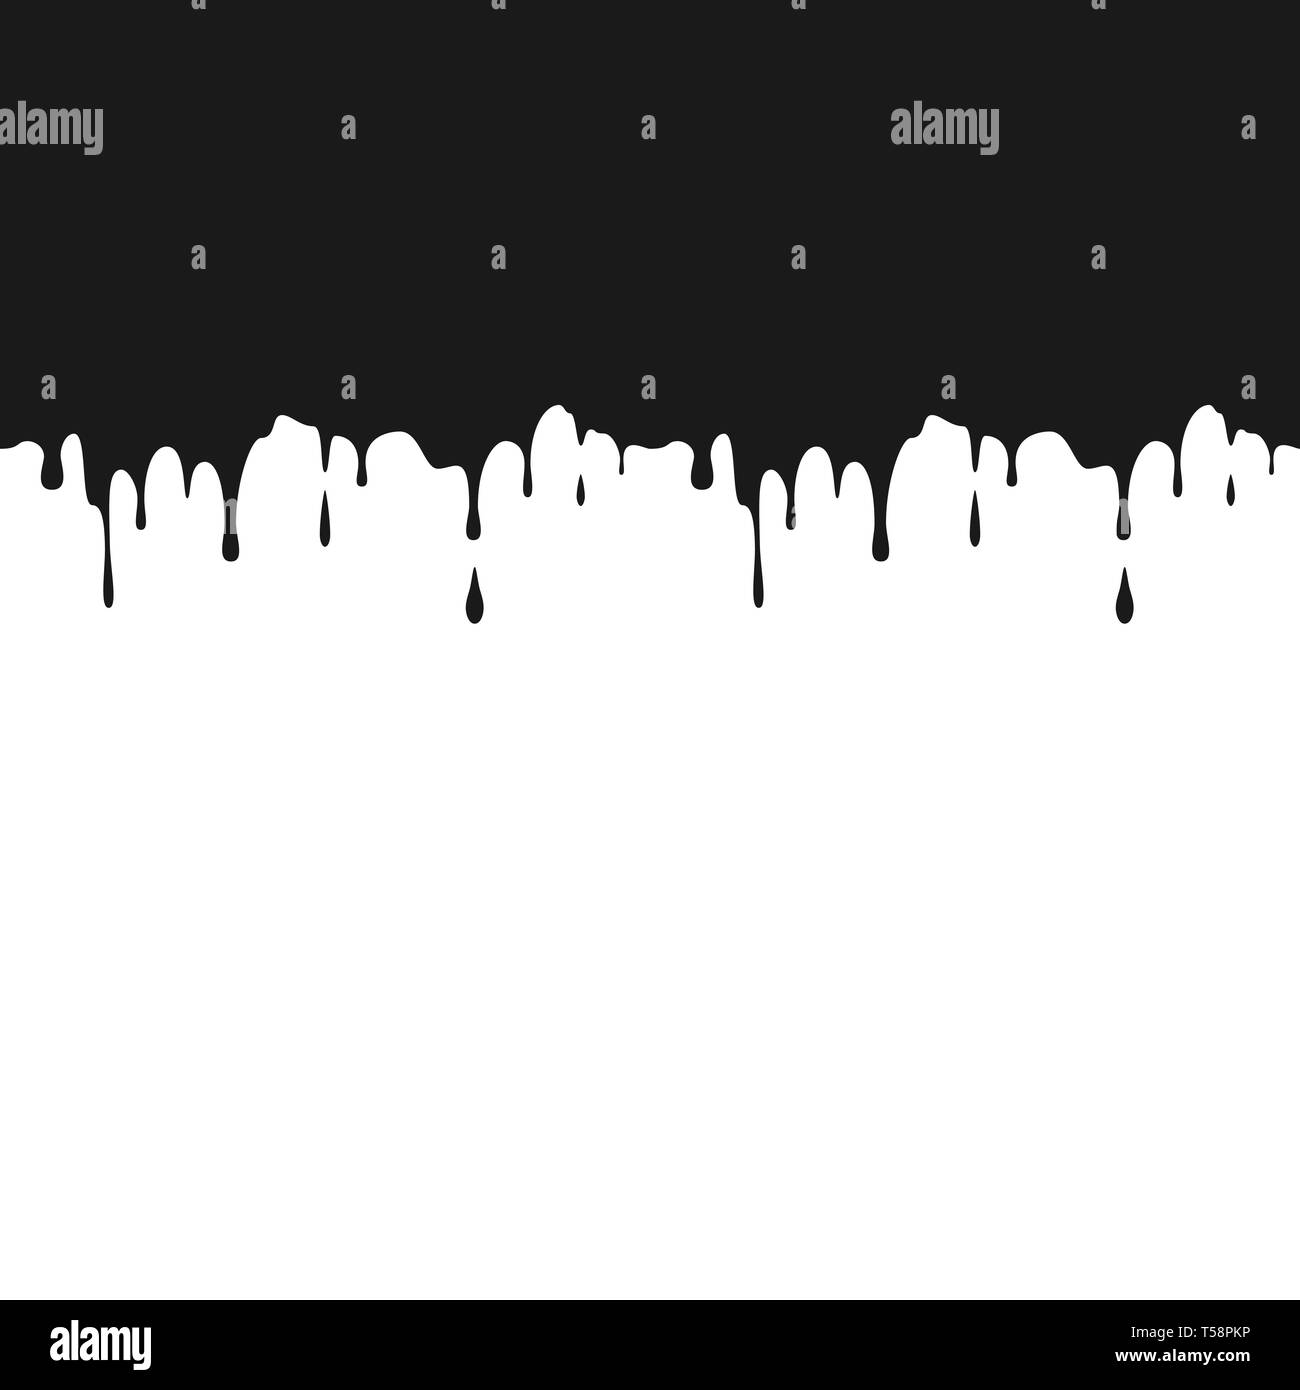 b99159997b7e5 Black ink drips. Seamless Dripping Paint Texture. Splatters and Dripping.  Vector illustration isolated